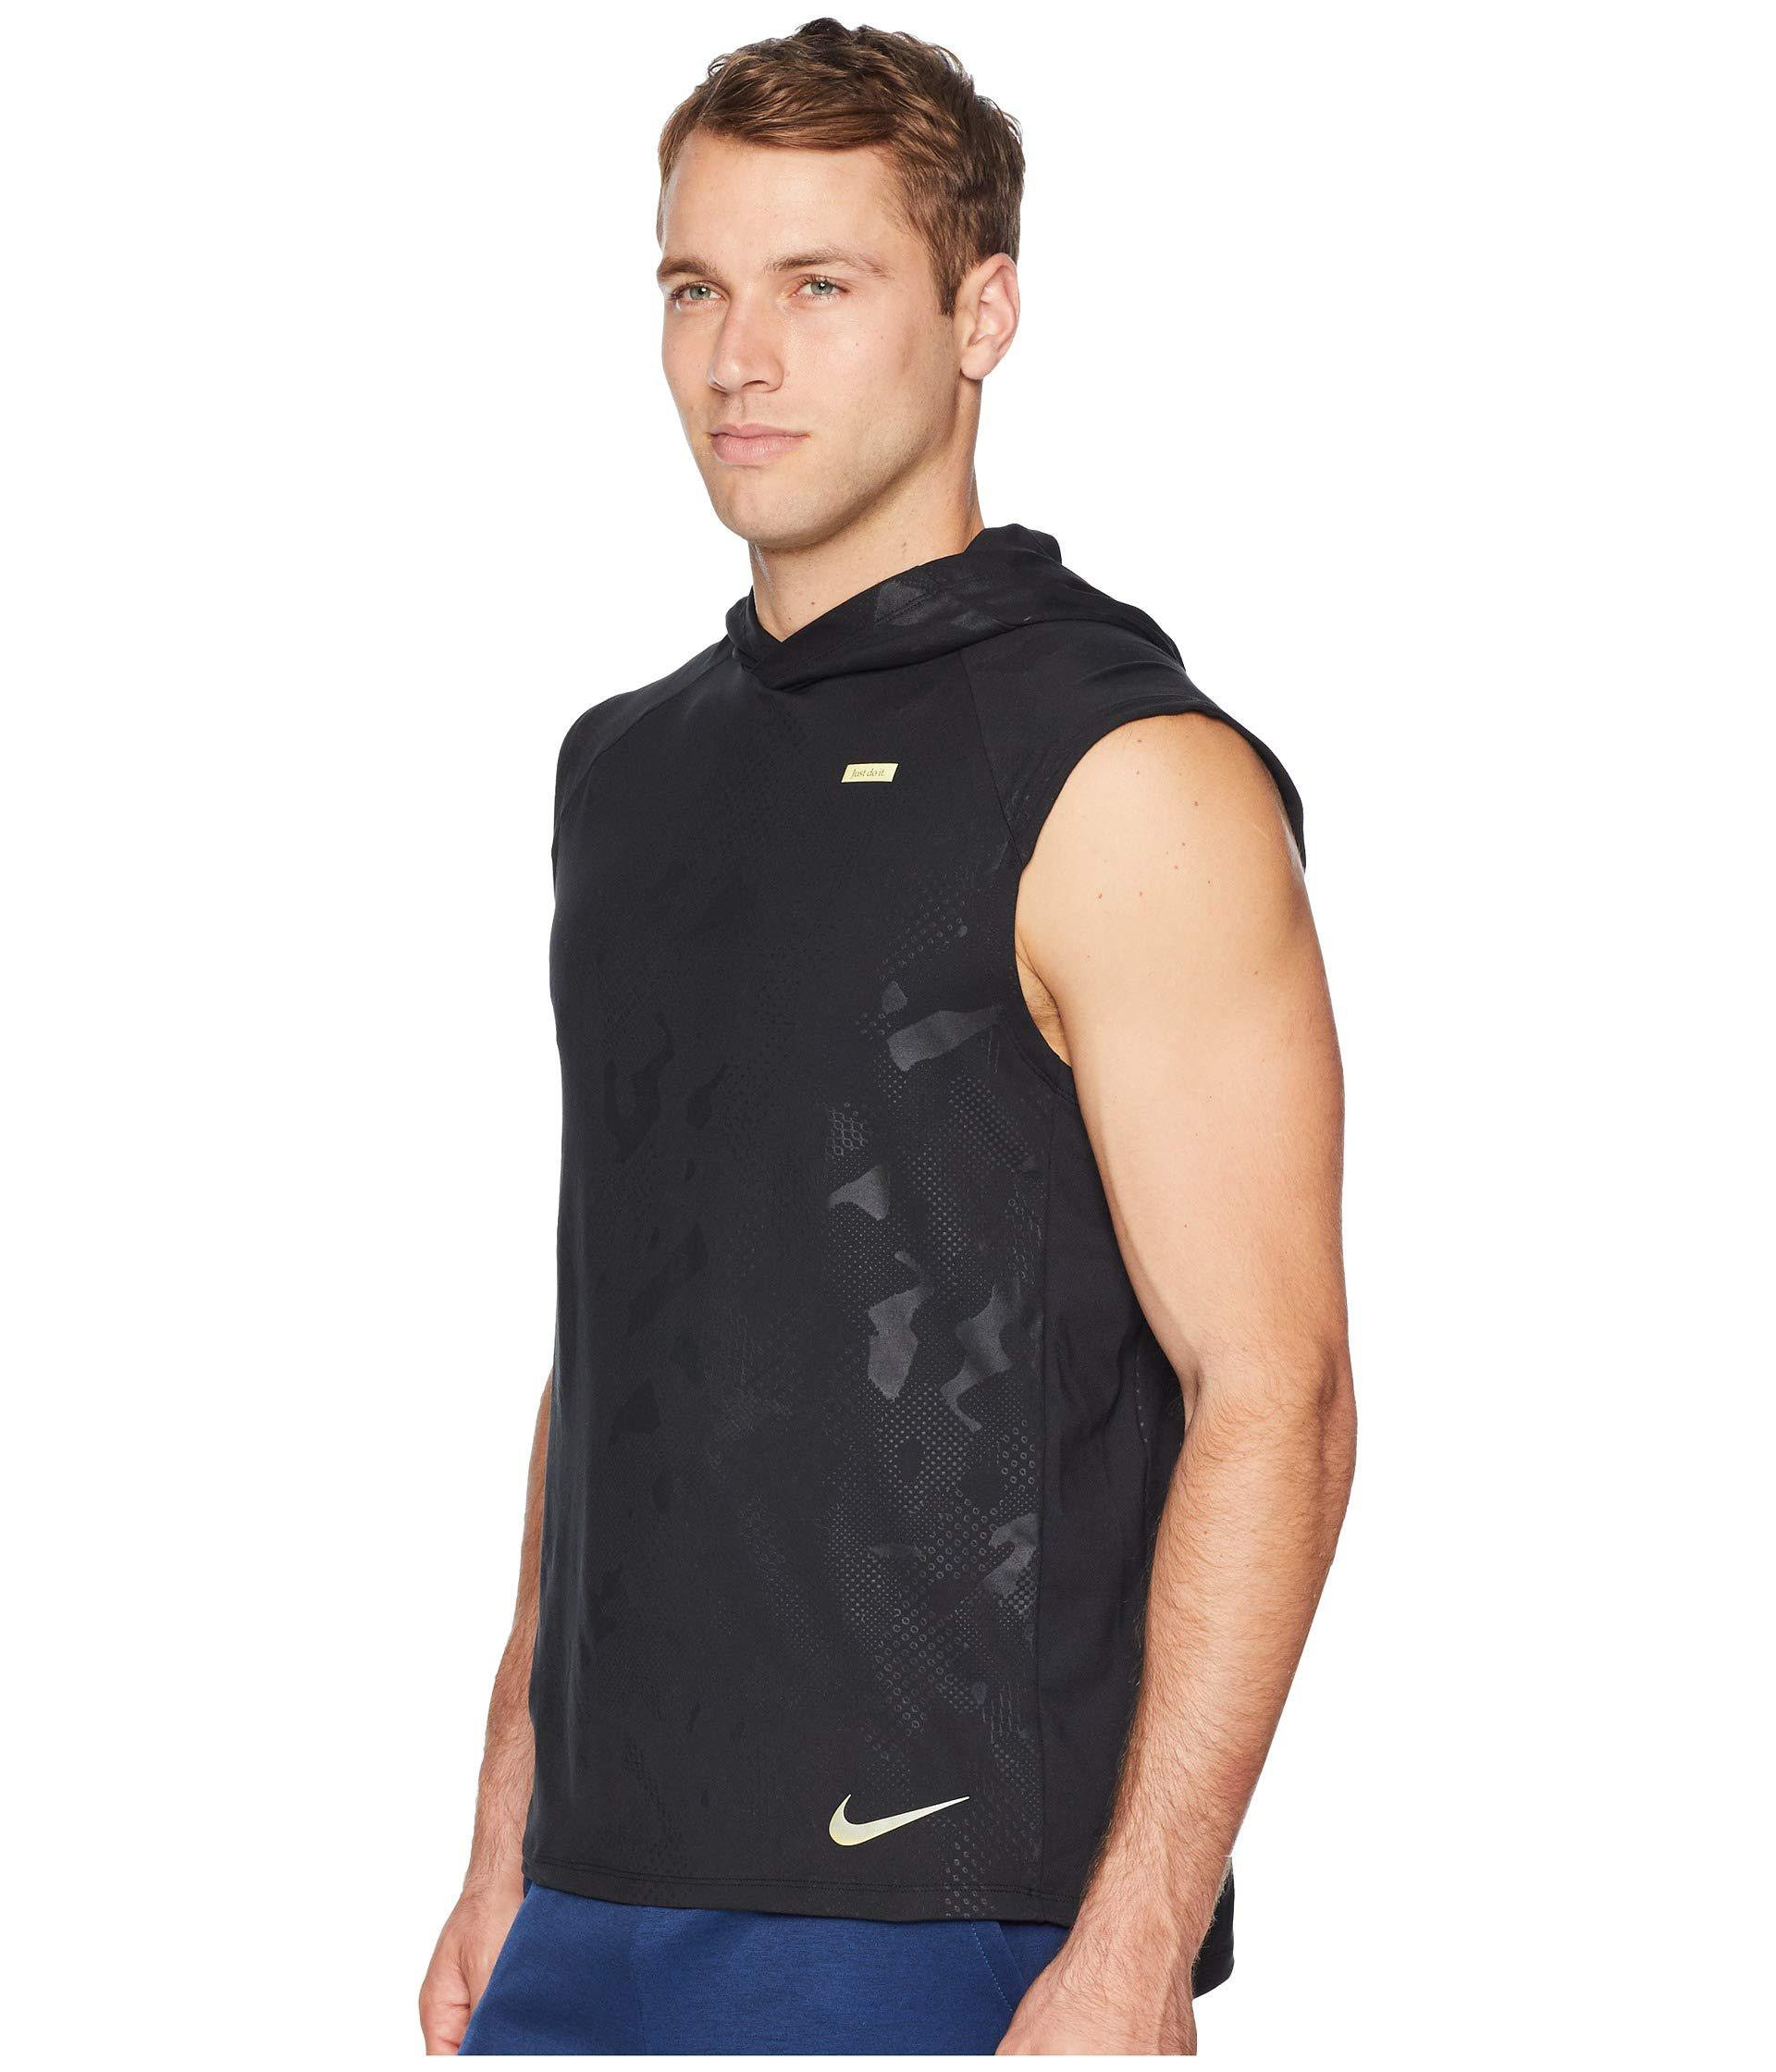 d5a4f95c0ab8 Lyst - Nike Element Sleeve Hoodie Gx in Black for Men - Save 19%